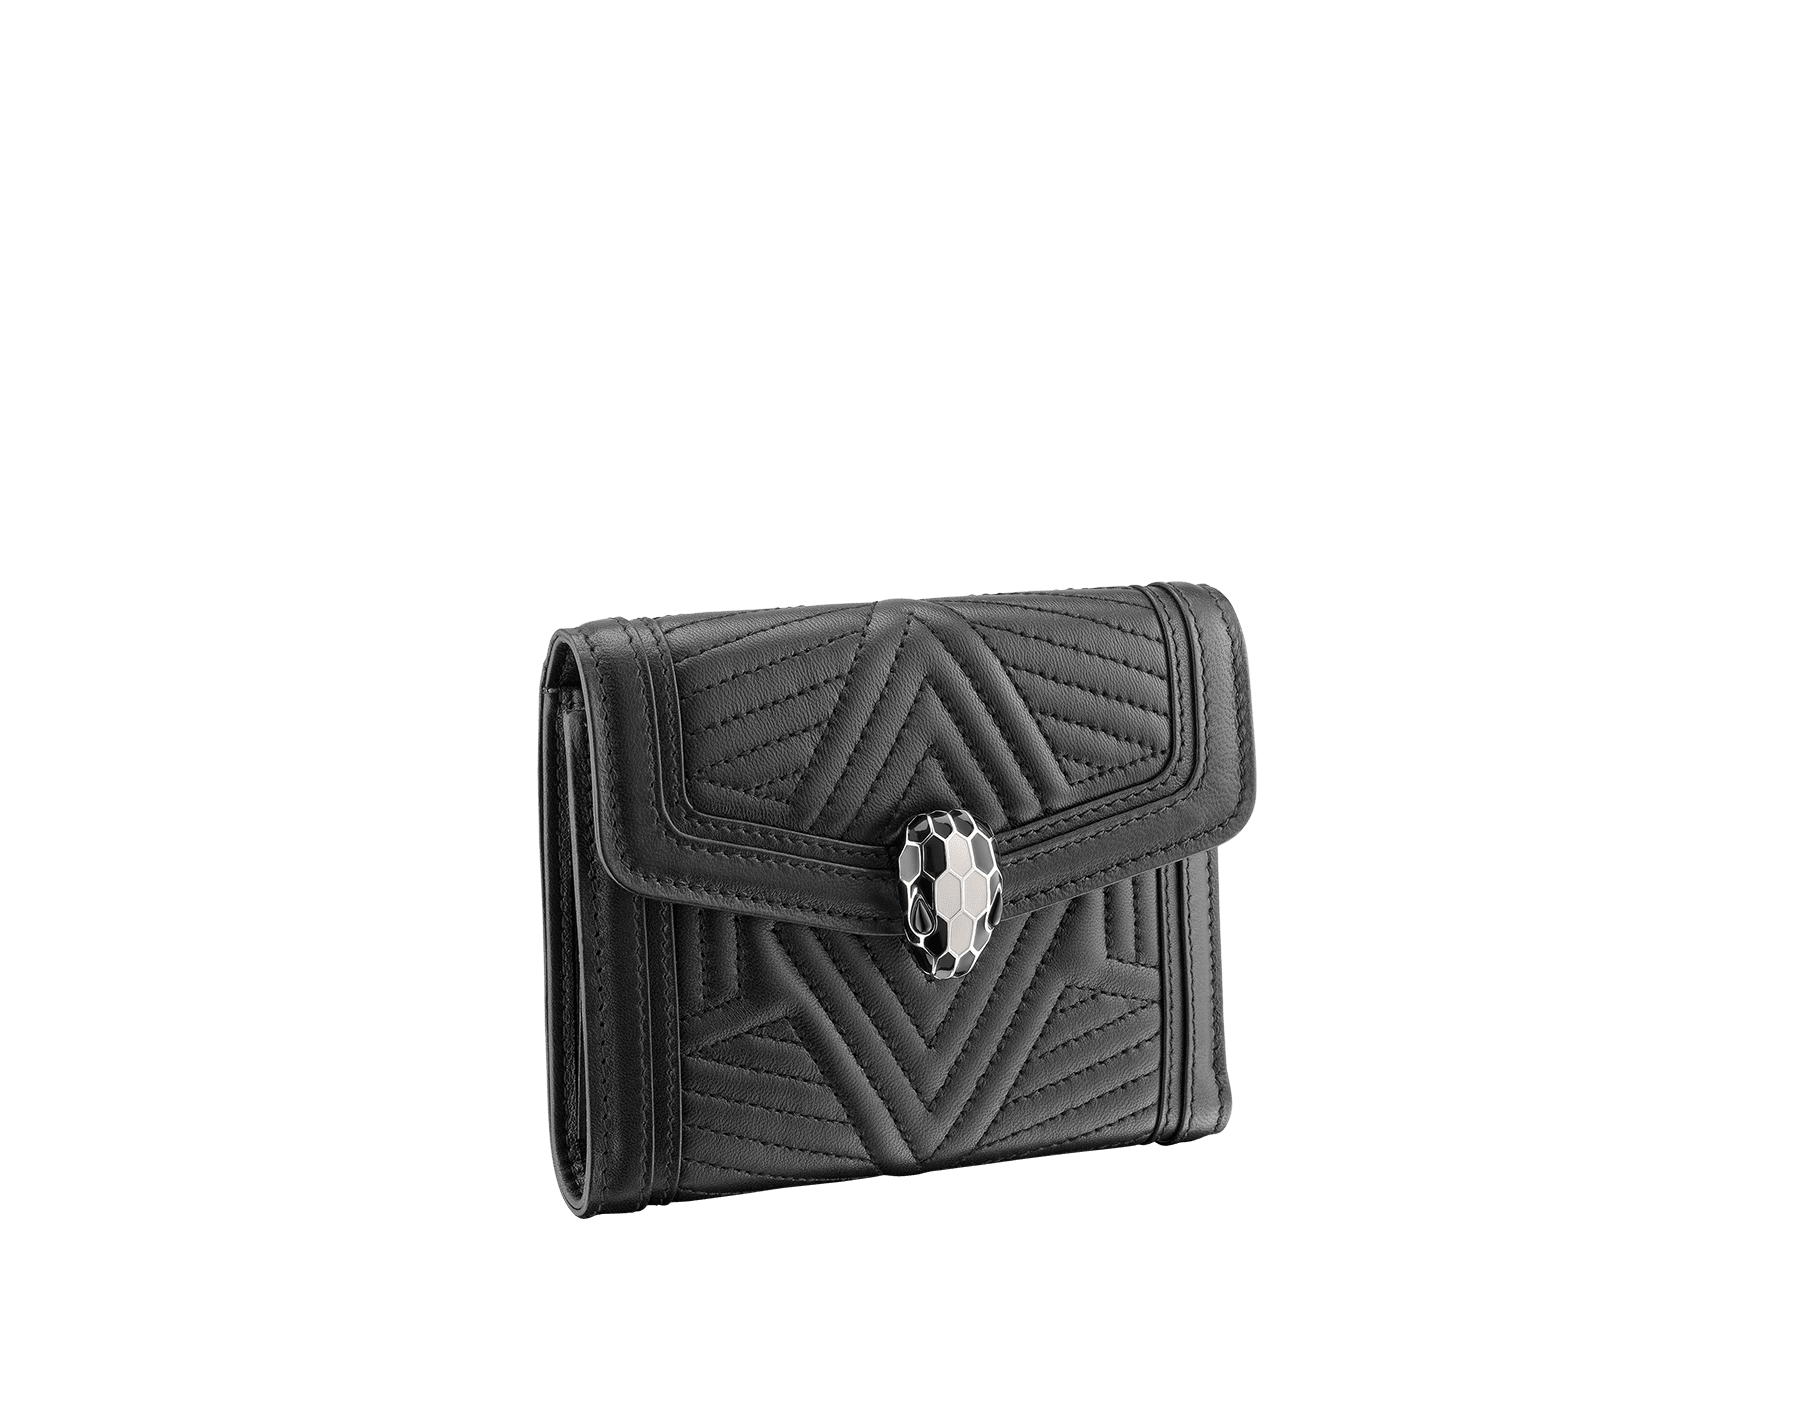 Serpenti Diamond Blast compact wallet in black quilted nappa leather. Iconic snakehead stud closure in black and white enamel, with black onyx eyes. 287596 image 1